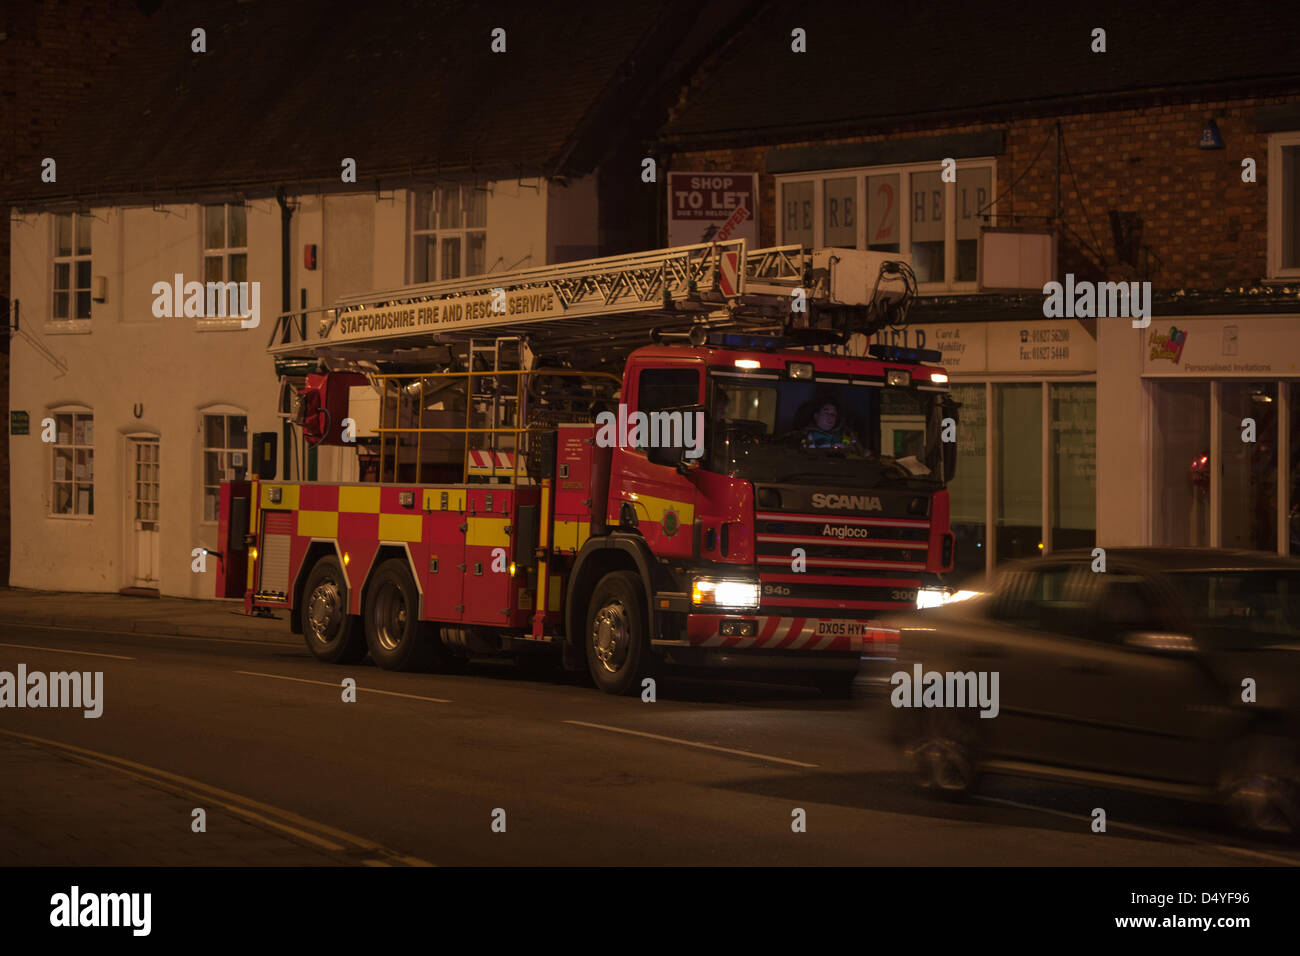 Tamworth, Staffordshire, UK. 20th March 2013. Fire rips through nightclub. Heavy duty ladder tender on standby at - Stock Image